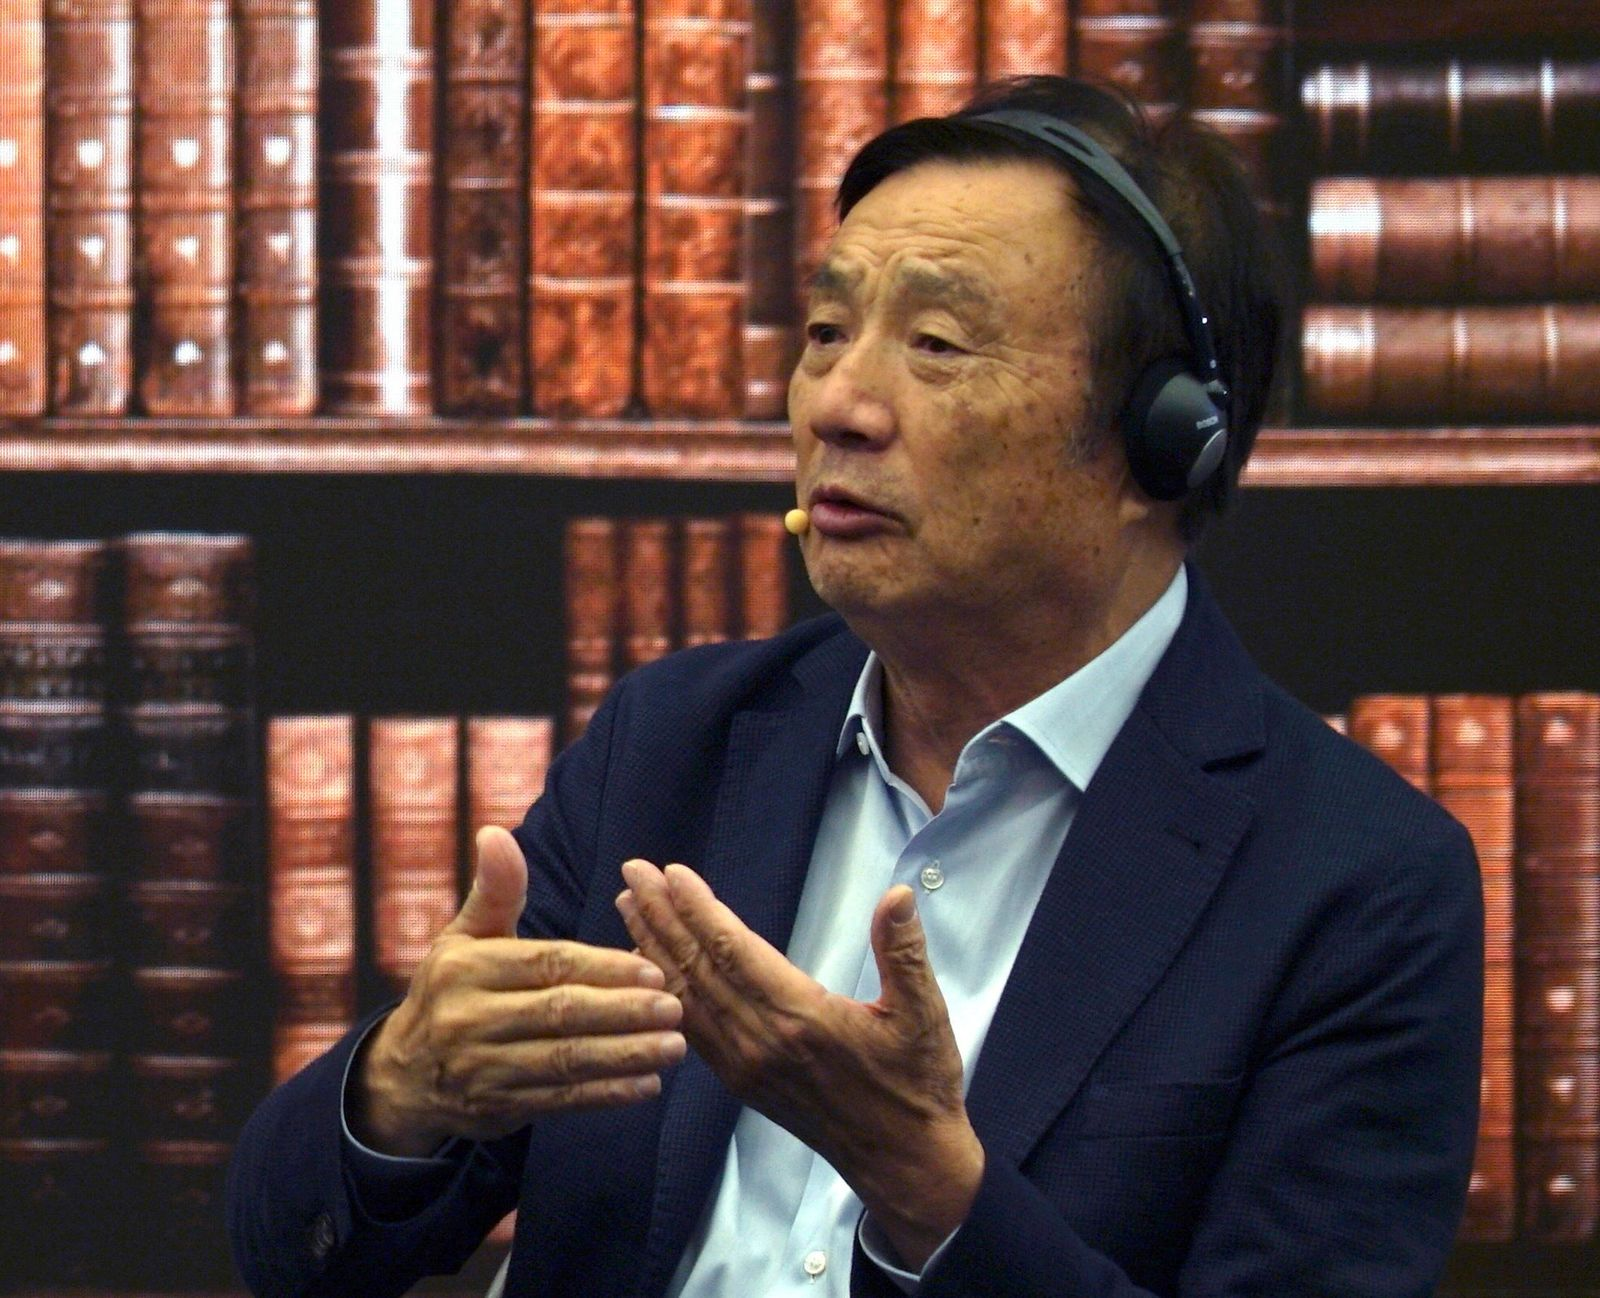 Huawei founder Ren Zhengfei speaks at a roundtable at the telecom giant's headquarters in Shenzhen in southern China on Monday, June 17, 2019.{ } (AP Photo/Dake Kang)